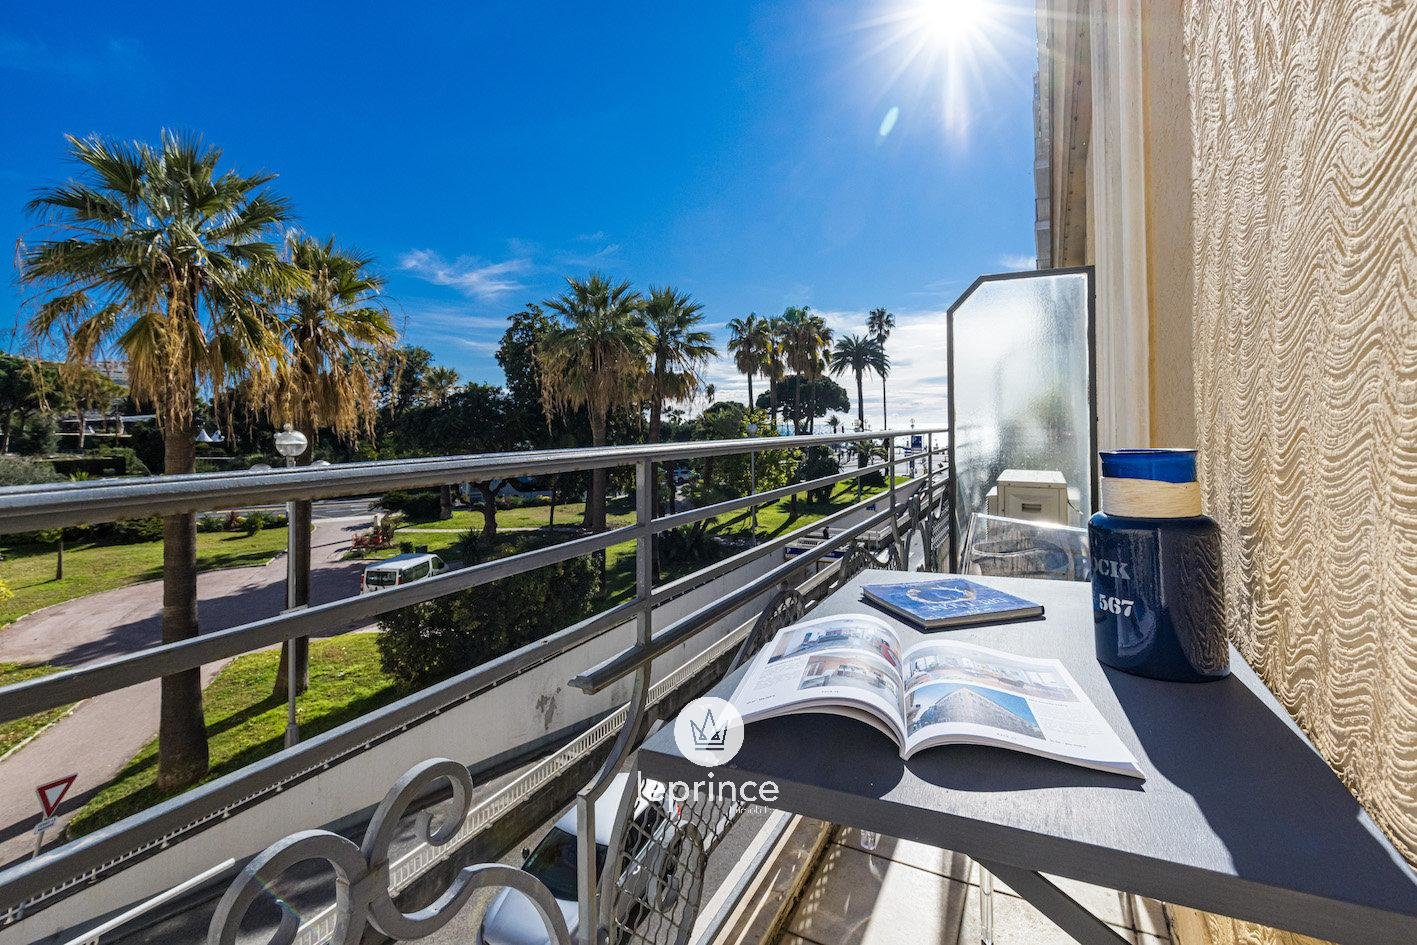 NICE CARRE d'OR / One bedroom Duplex Apartment - Balcony - Beautiful Clear View